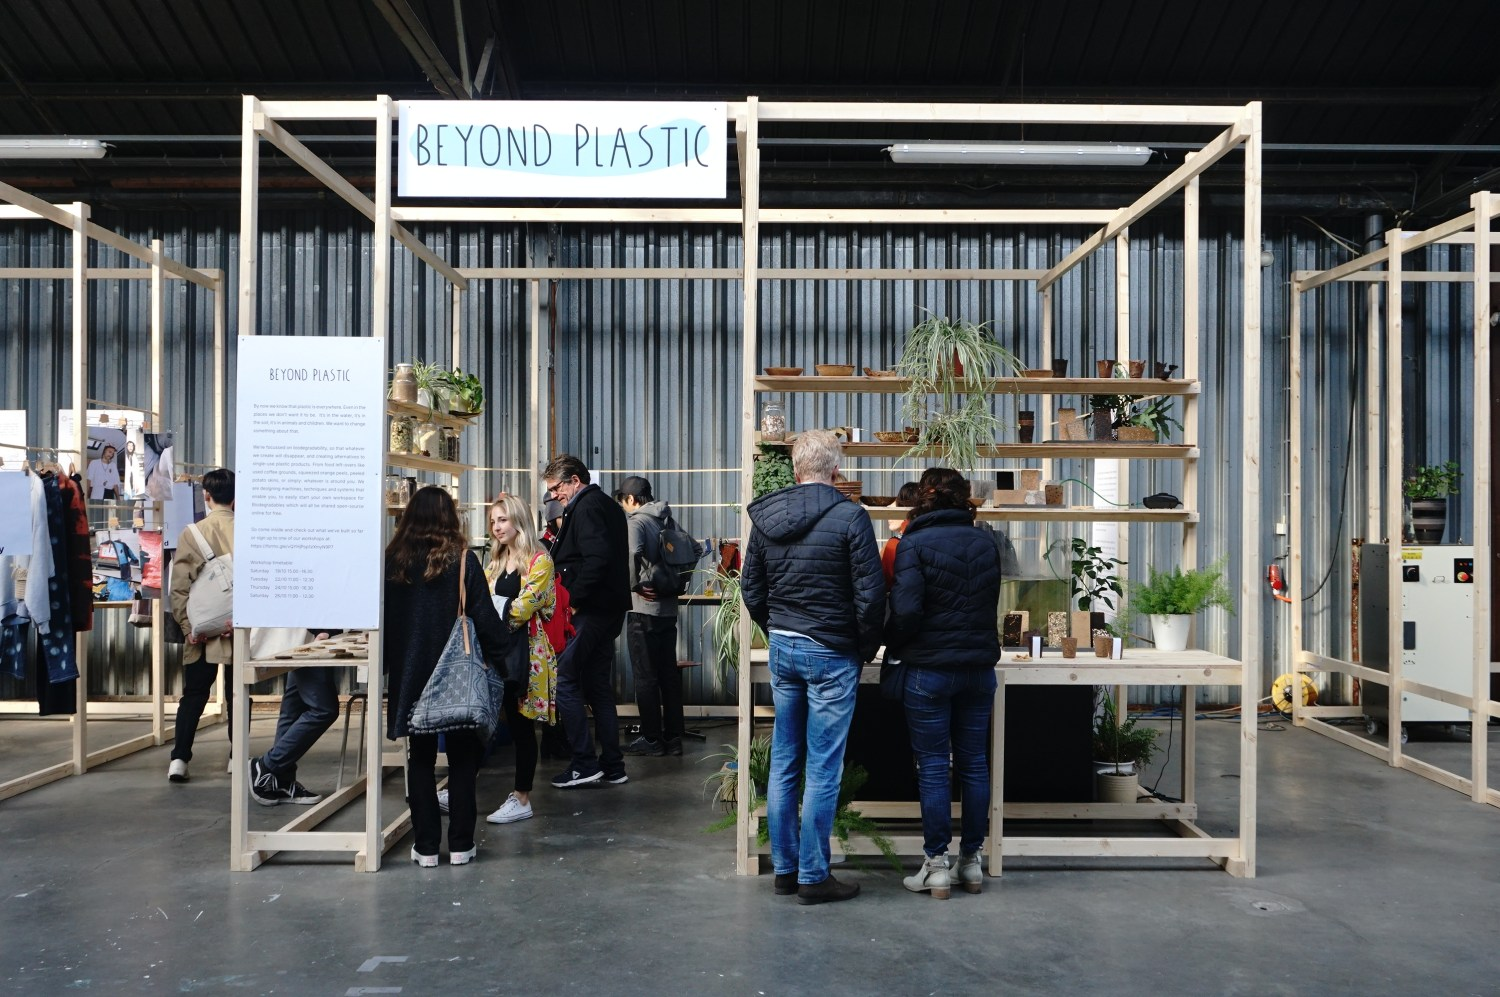 exhibition stand made of wood sticks and plants